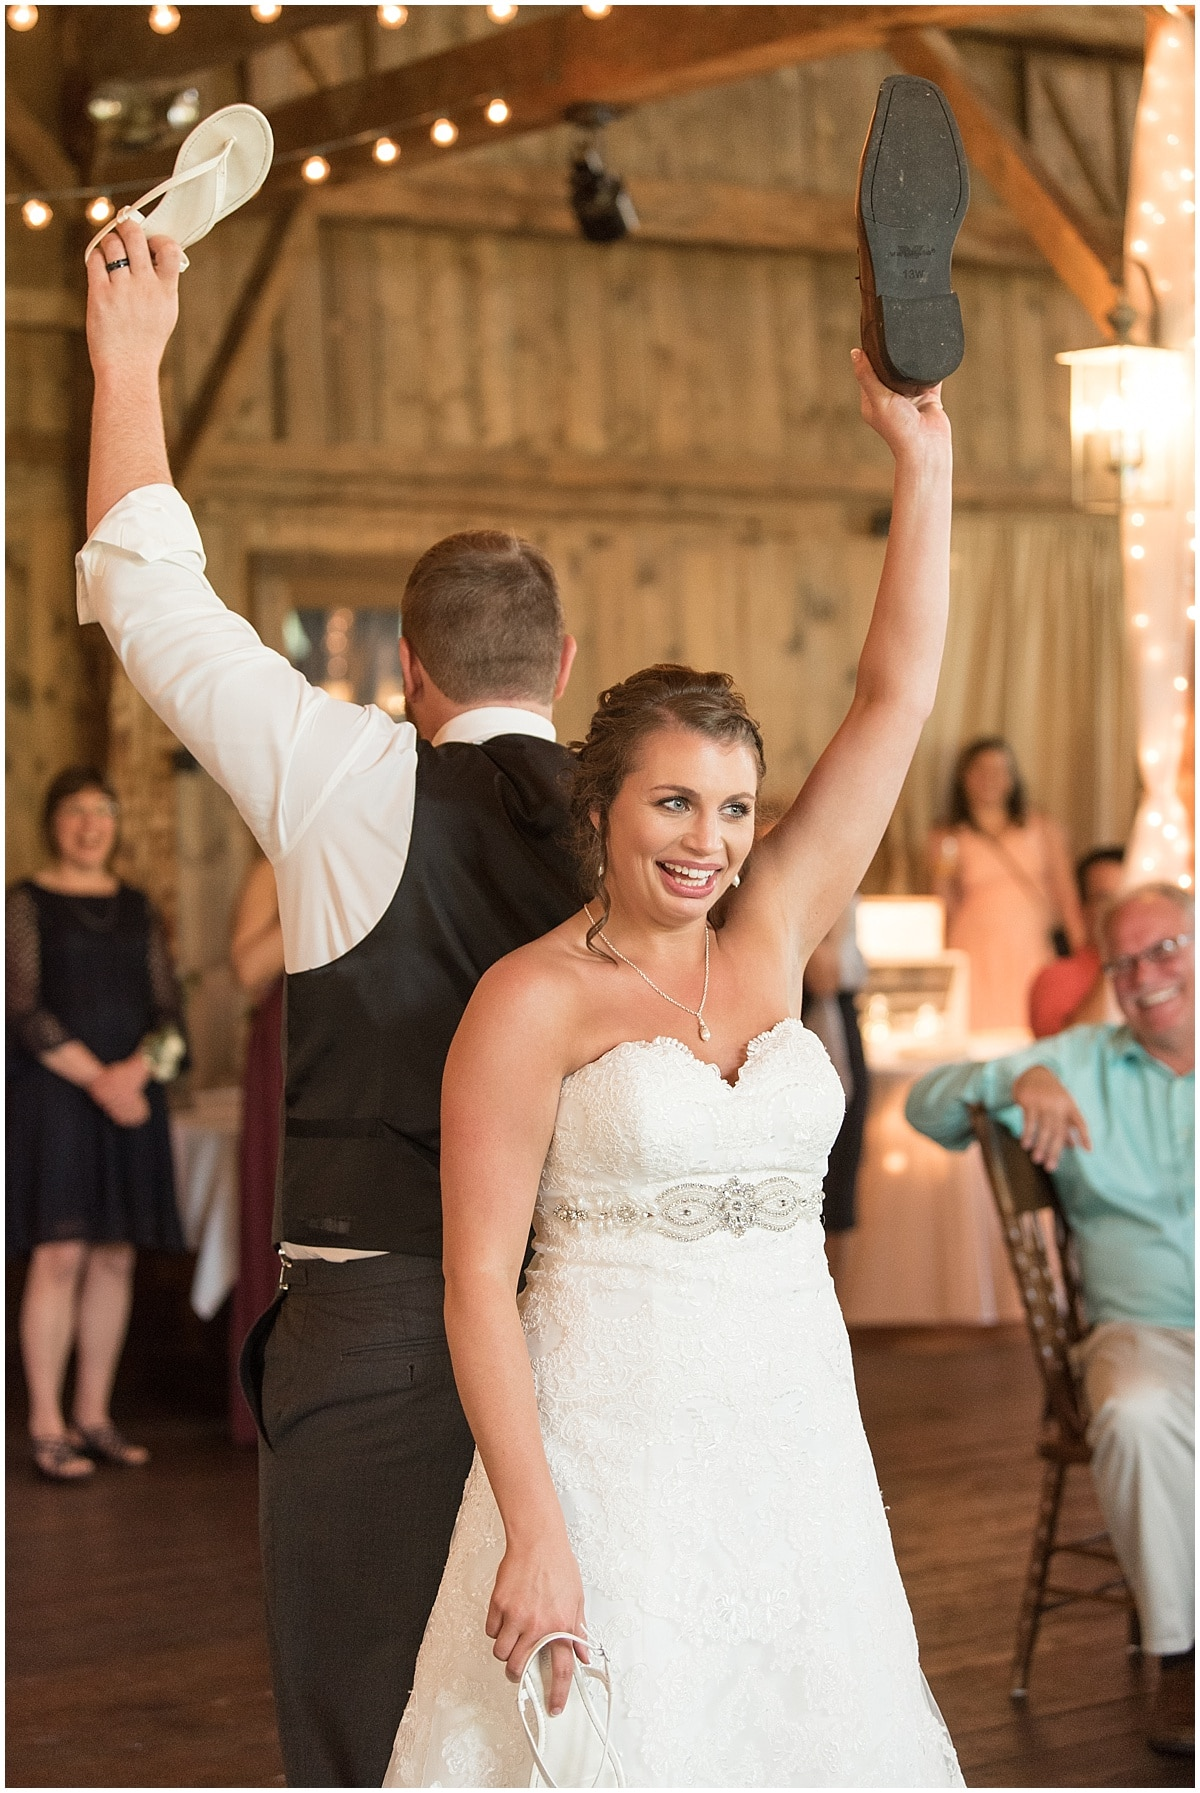 Matt & Mandi Gall celebrated their wedding at Amish Acres in Nappanee, Indiana and used Victoria Rayburn Photography.